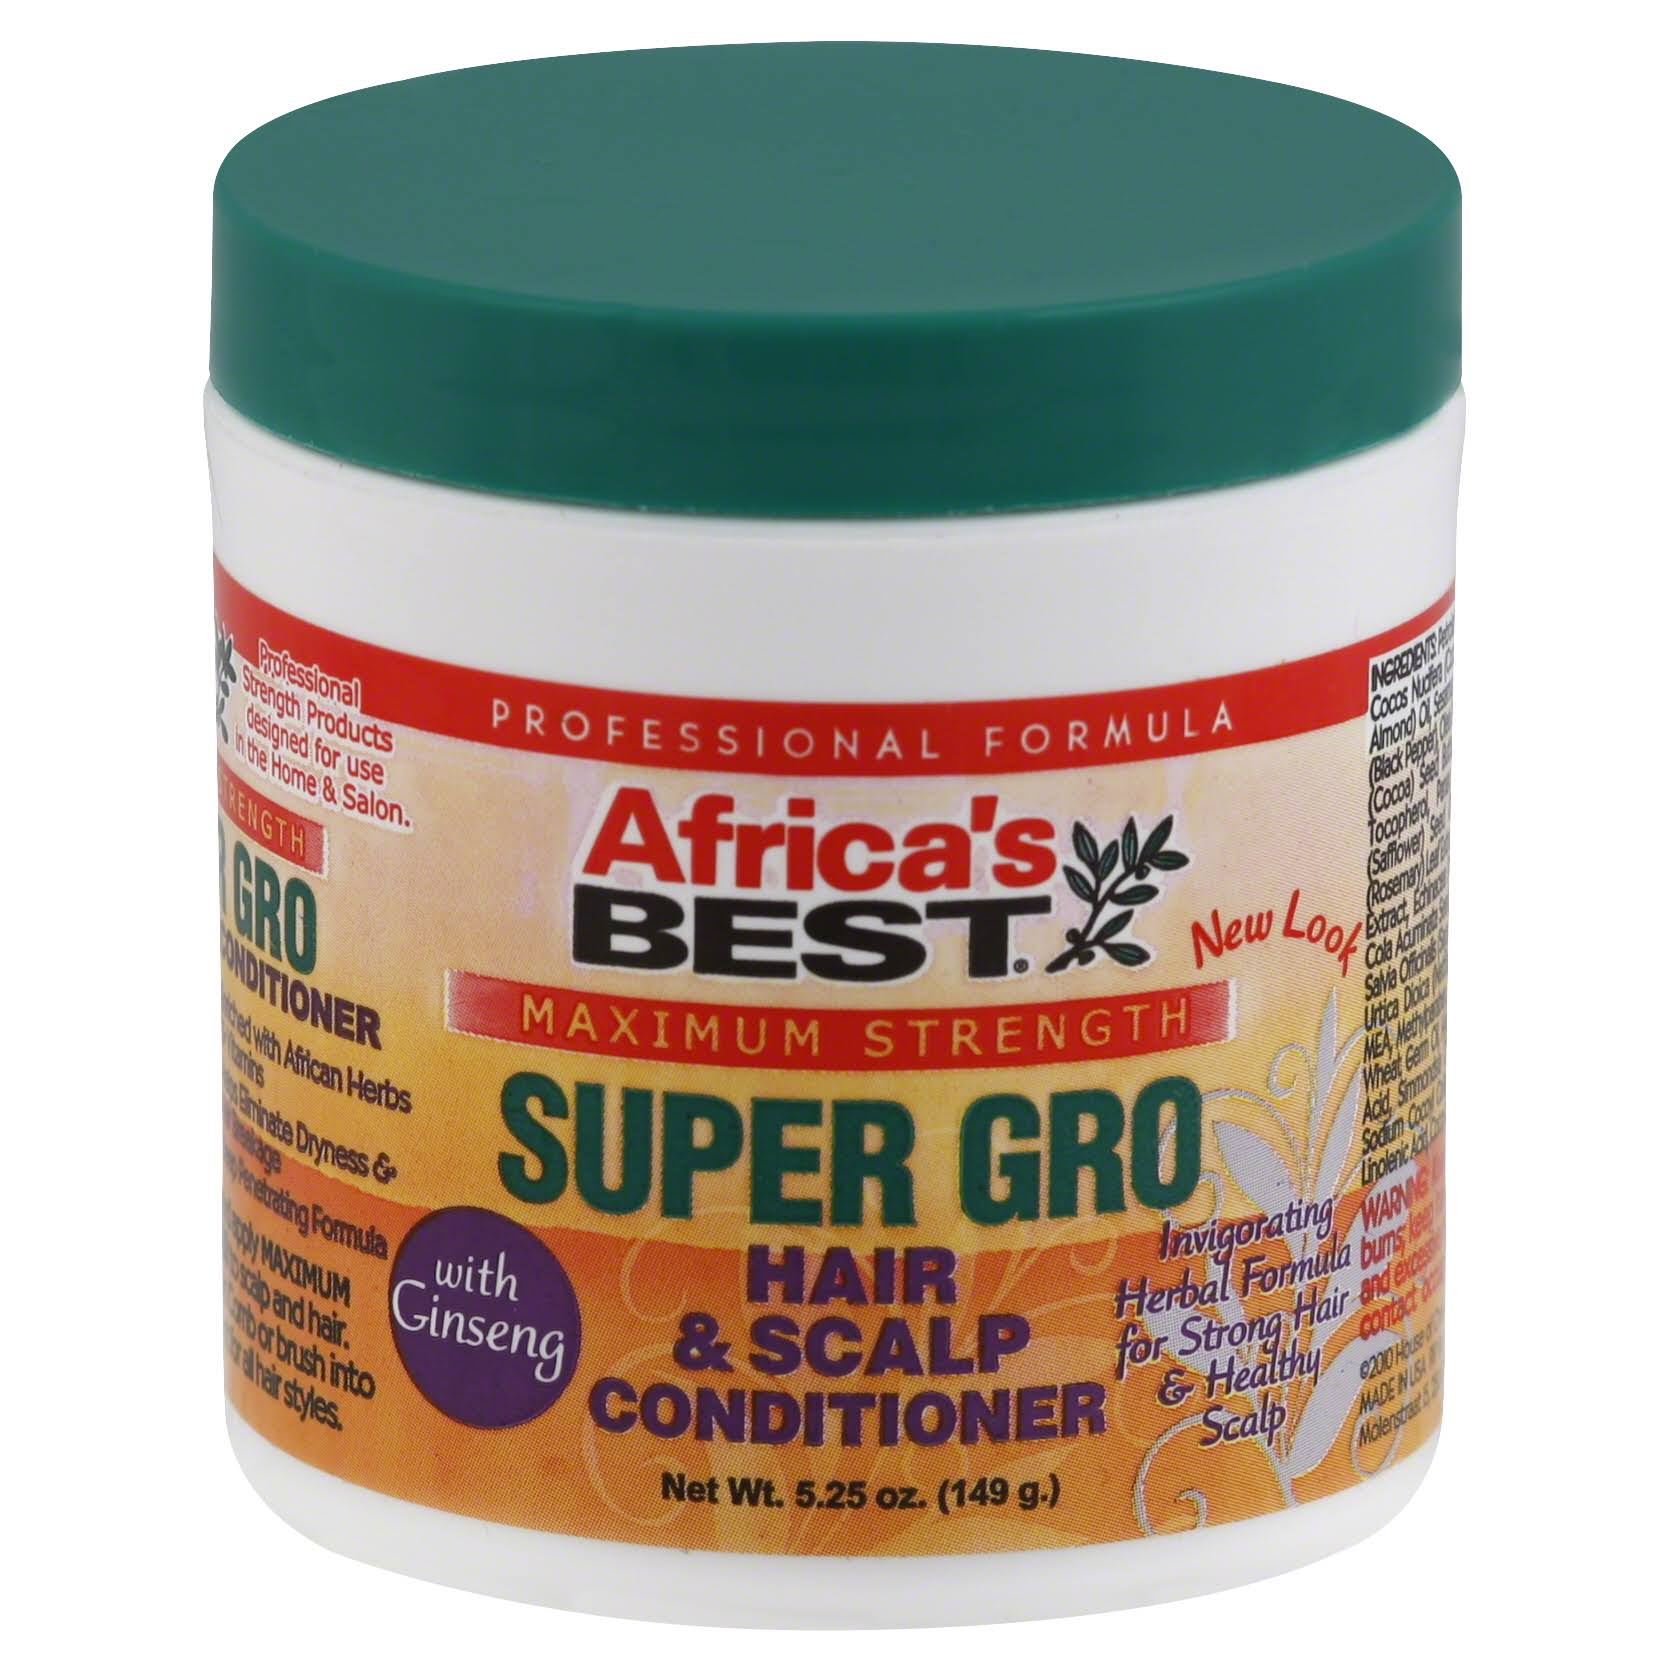 Africa's Best Super Gro Hair & Scalp Conditioner - 5.25oz